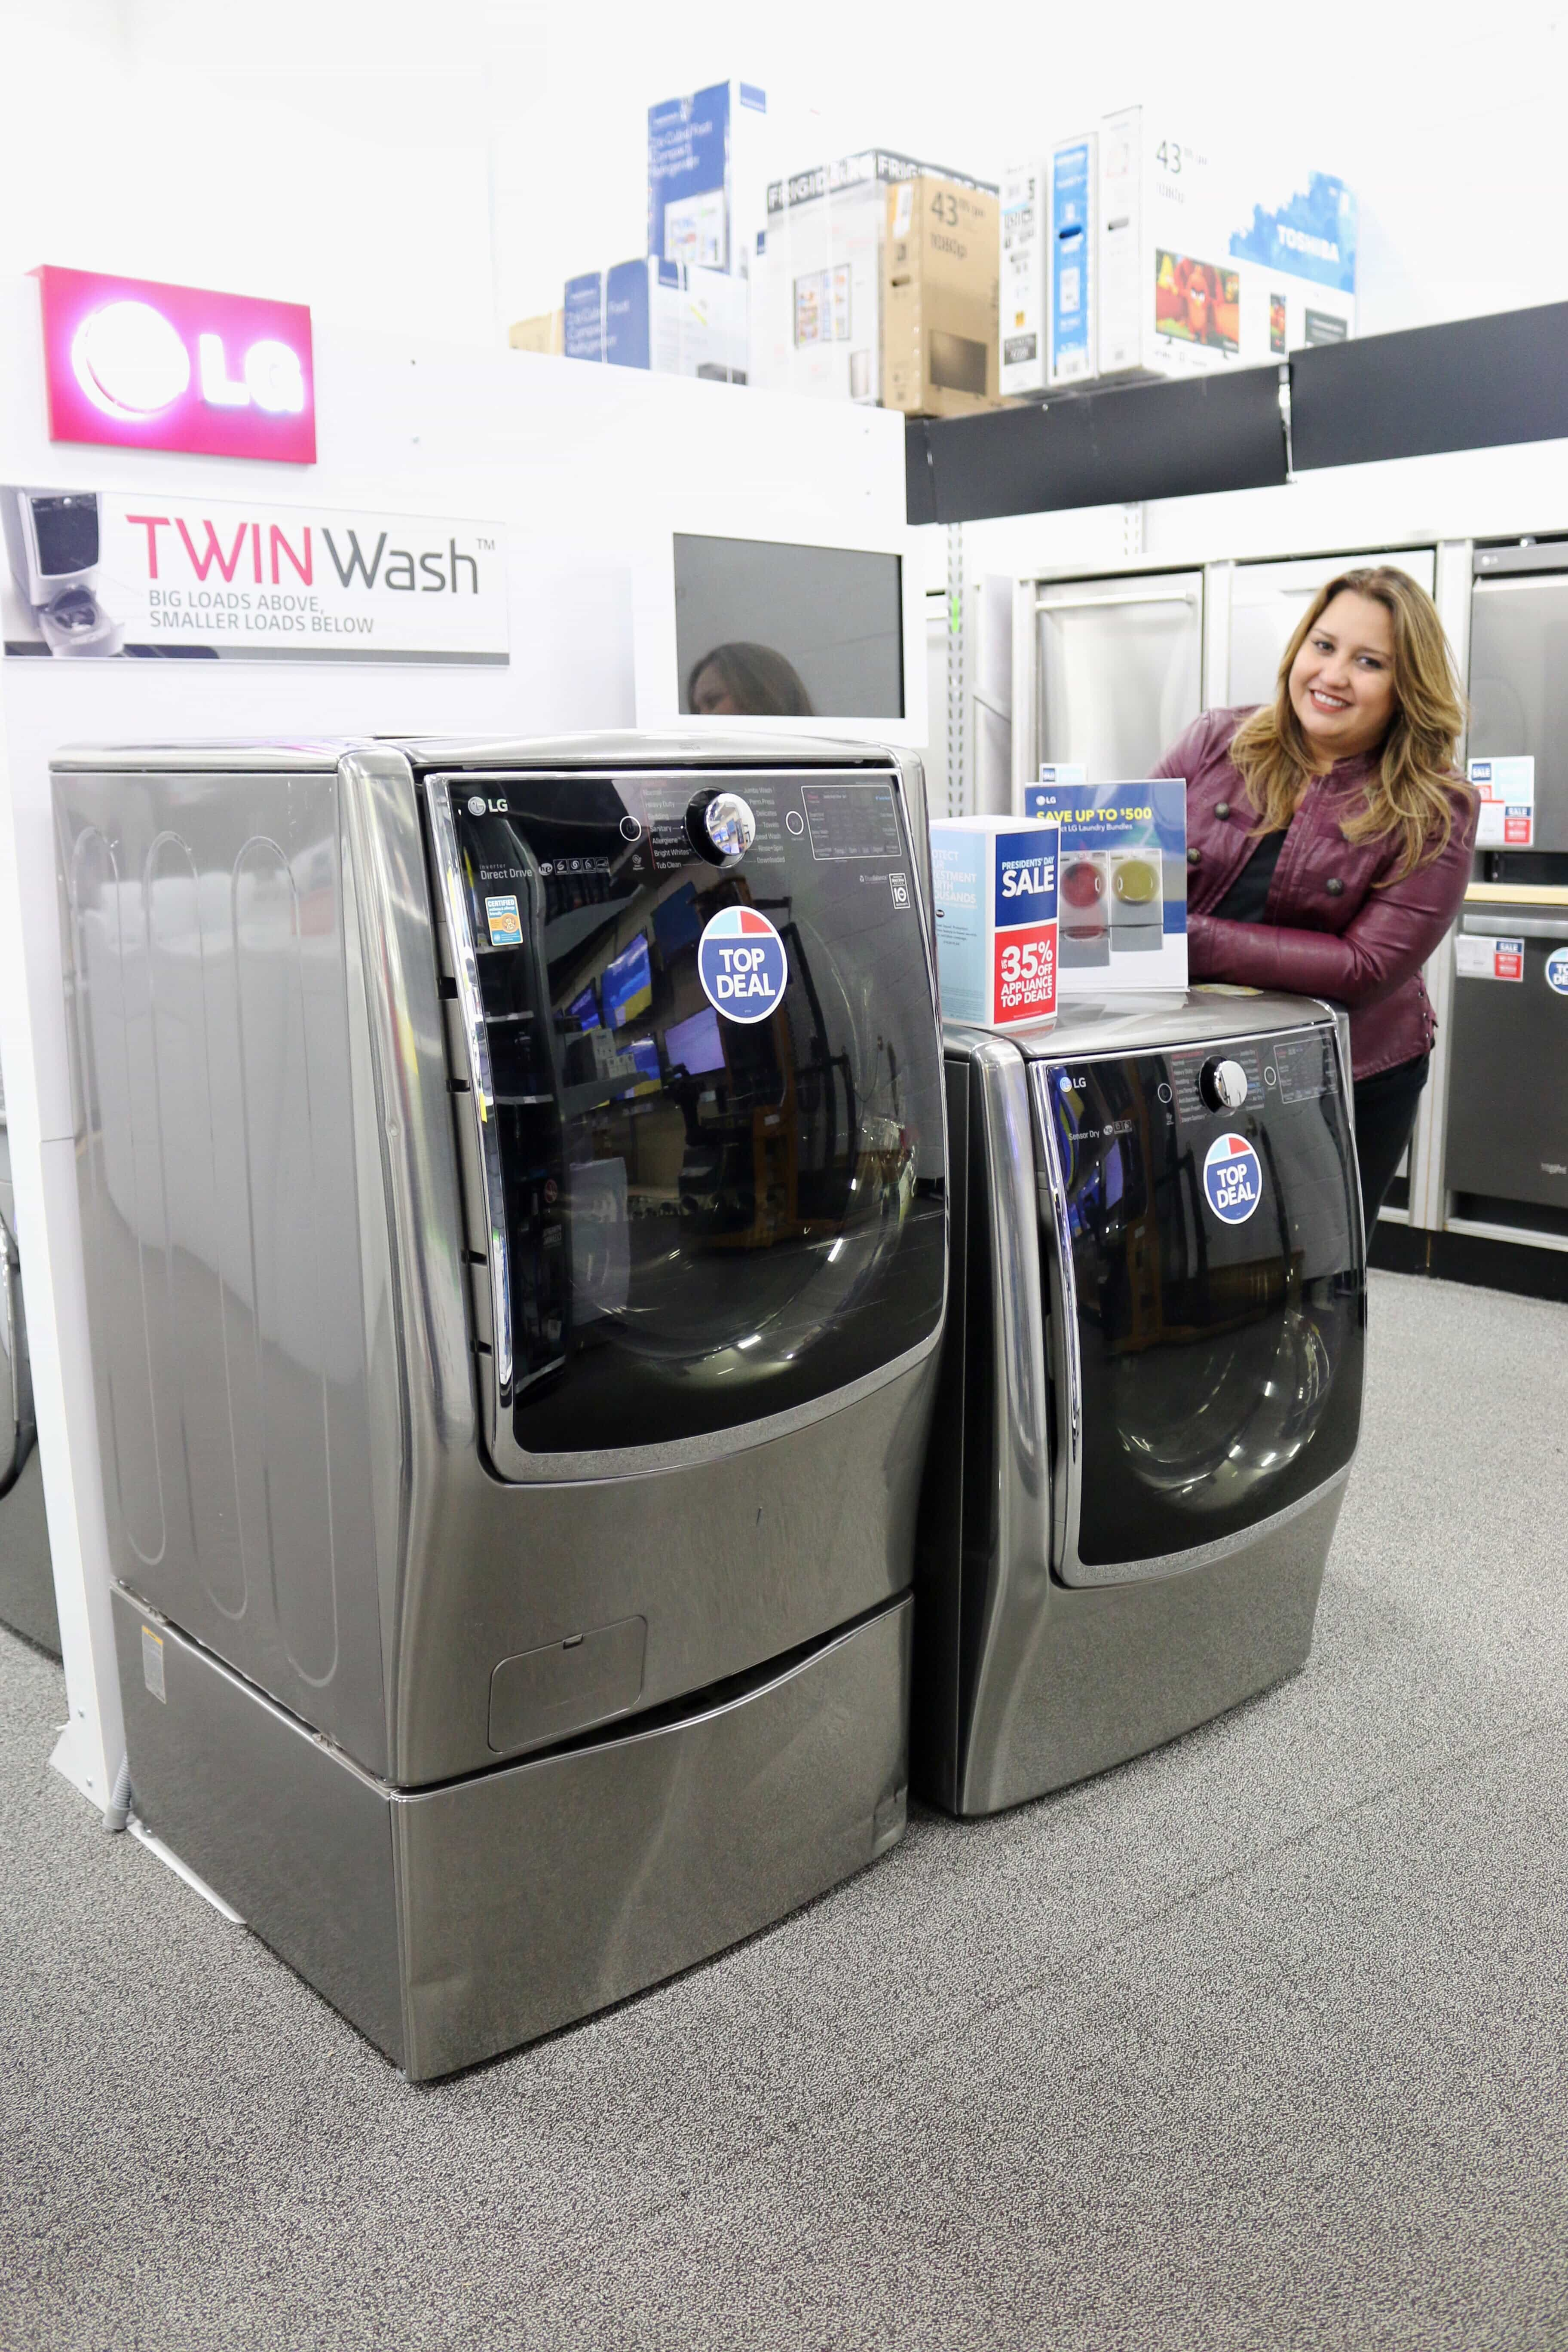 LG-TwinWash-laundry-system at-best-buy